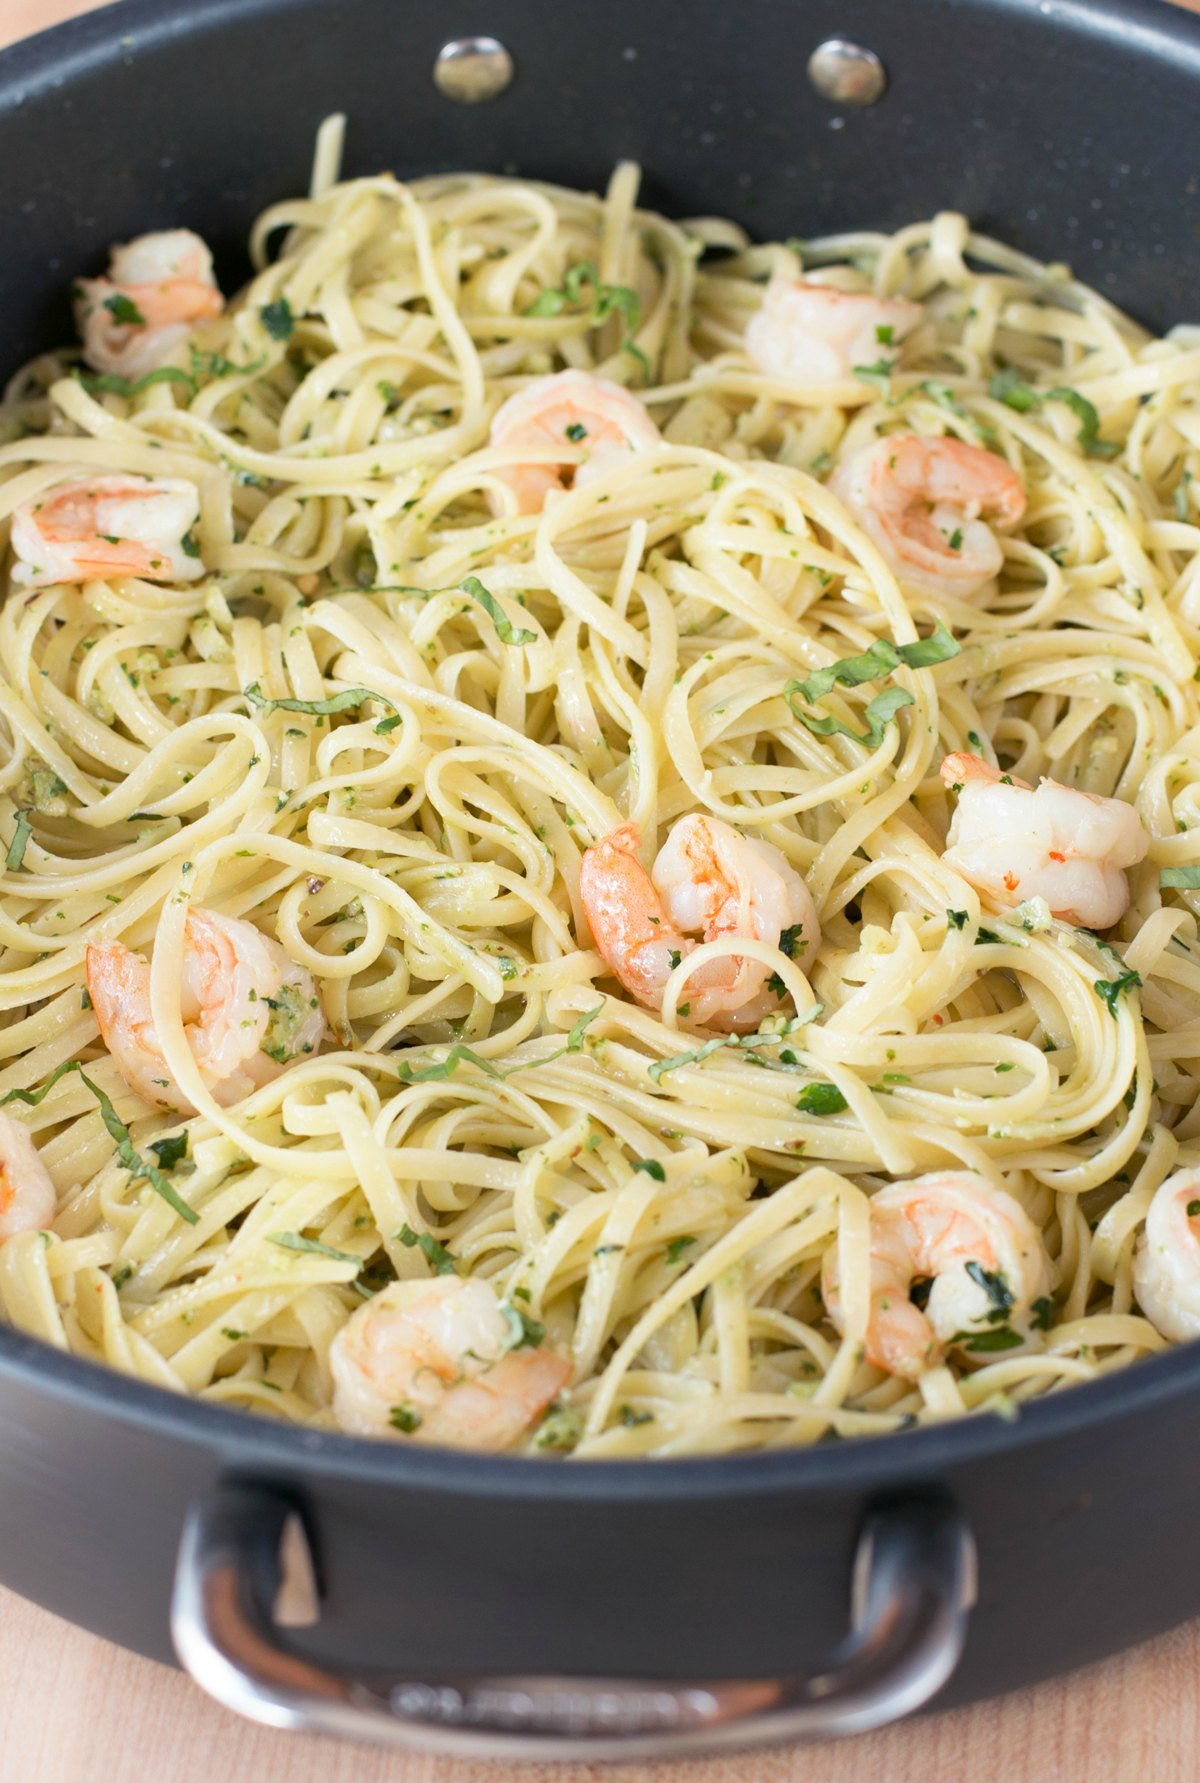 Pesto shrimp scampi with pasta being tossed together in a large stockpot